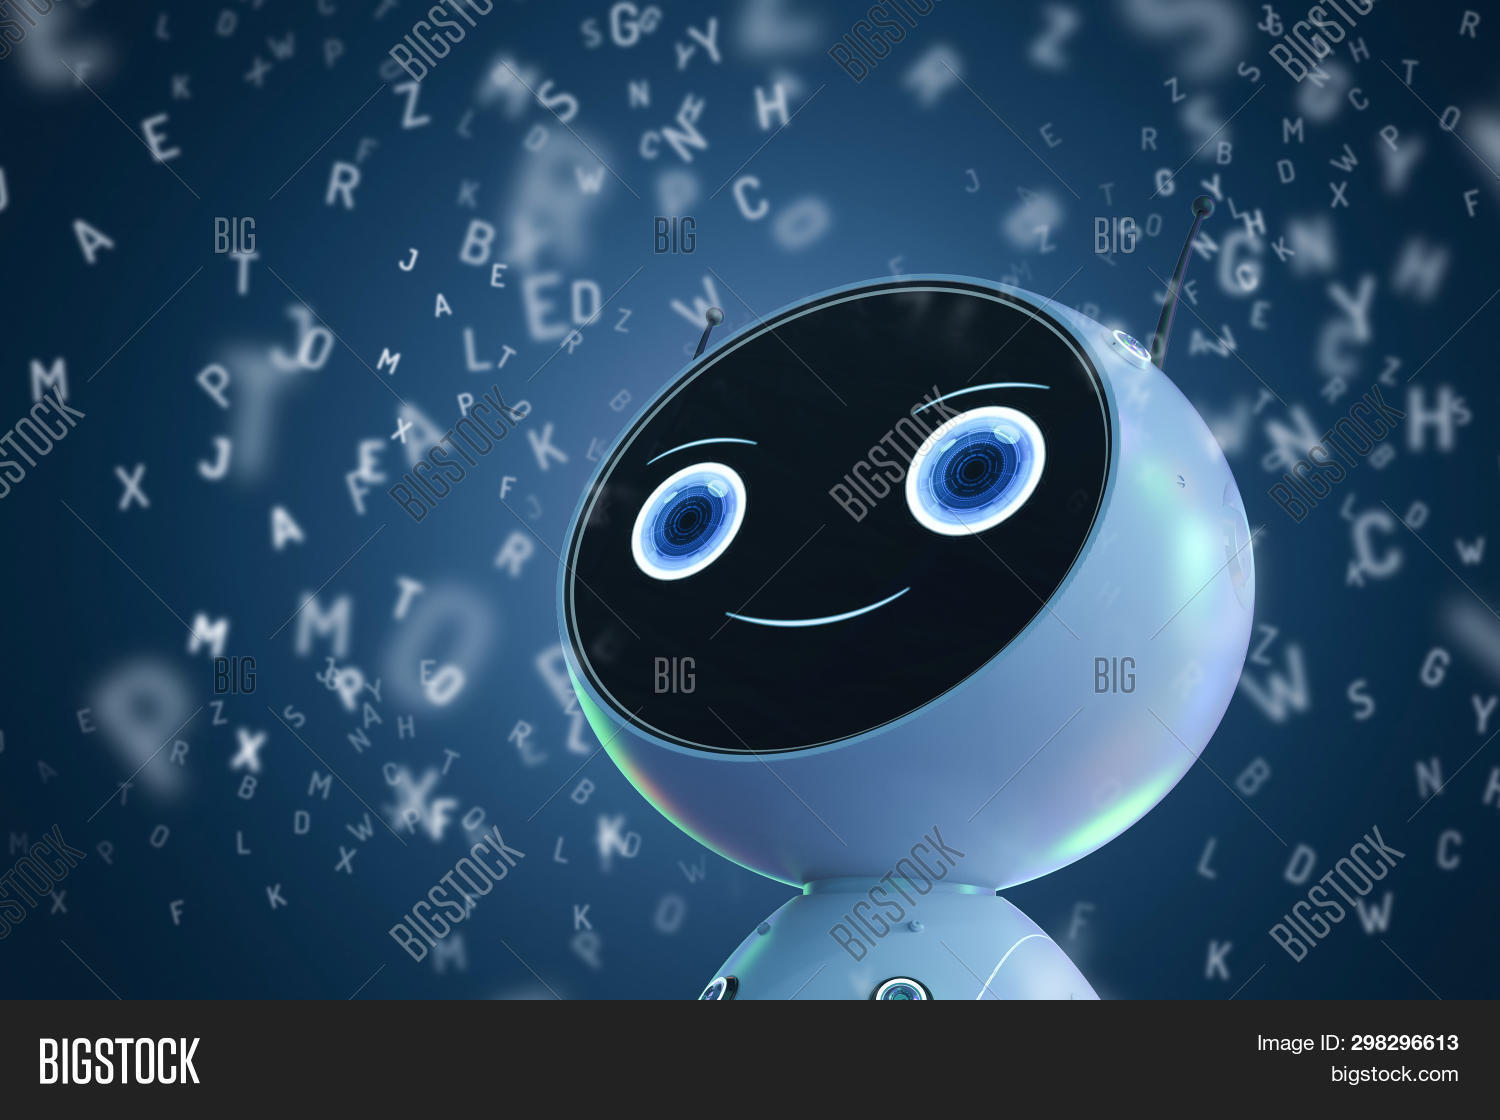 Machine Learning Concept With 3d Rendering Robot Learning Or Machine Learning With Alphabets